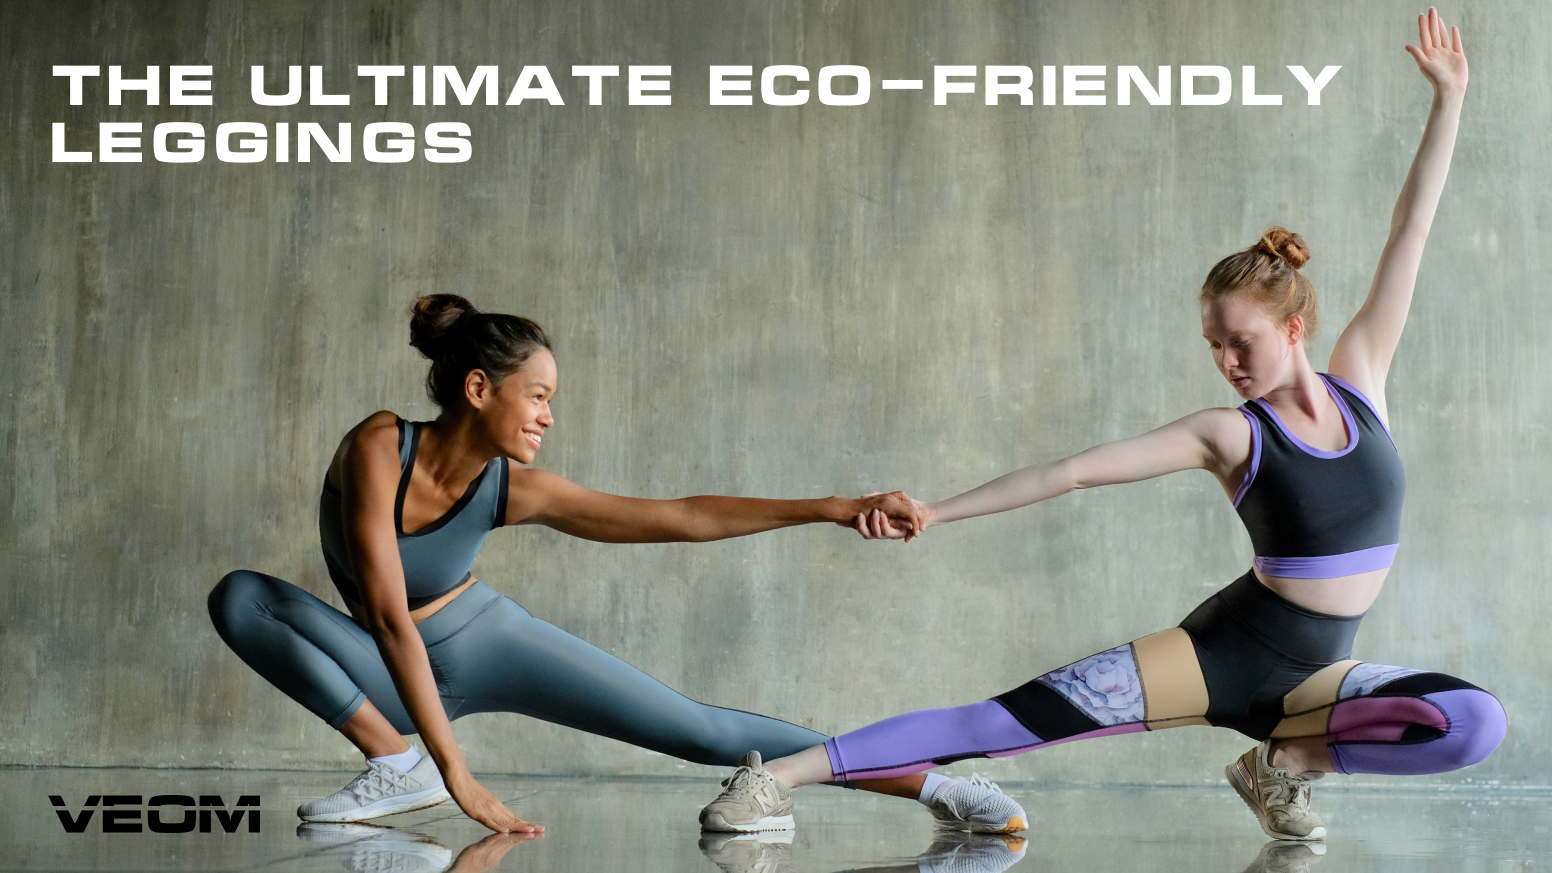 Sustainable performance leggings | Unique prints | Breathable | Comfortable | Durable. Ethically made in Europe from recycled plastic